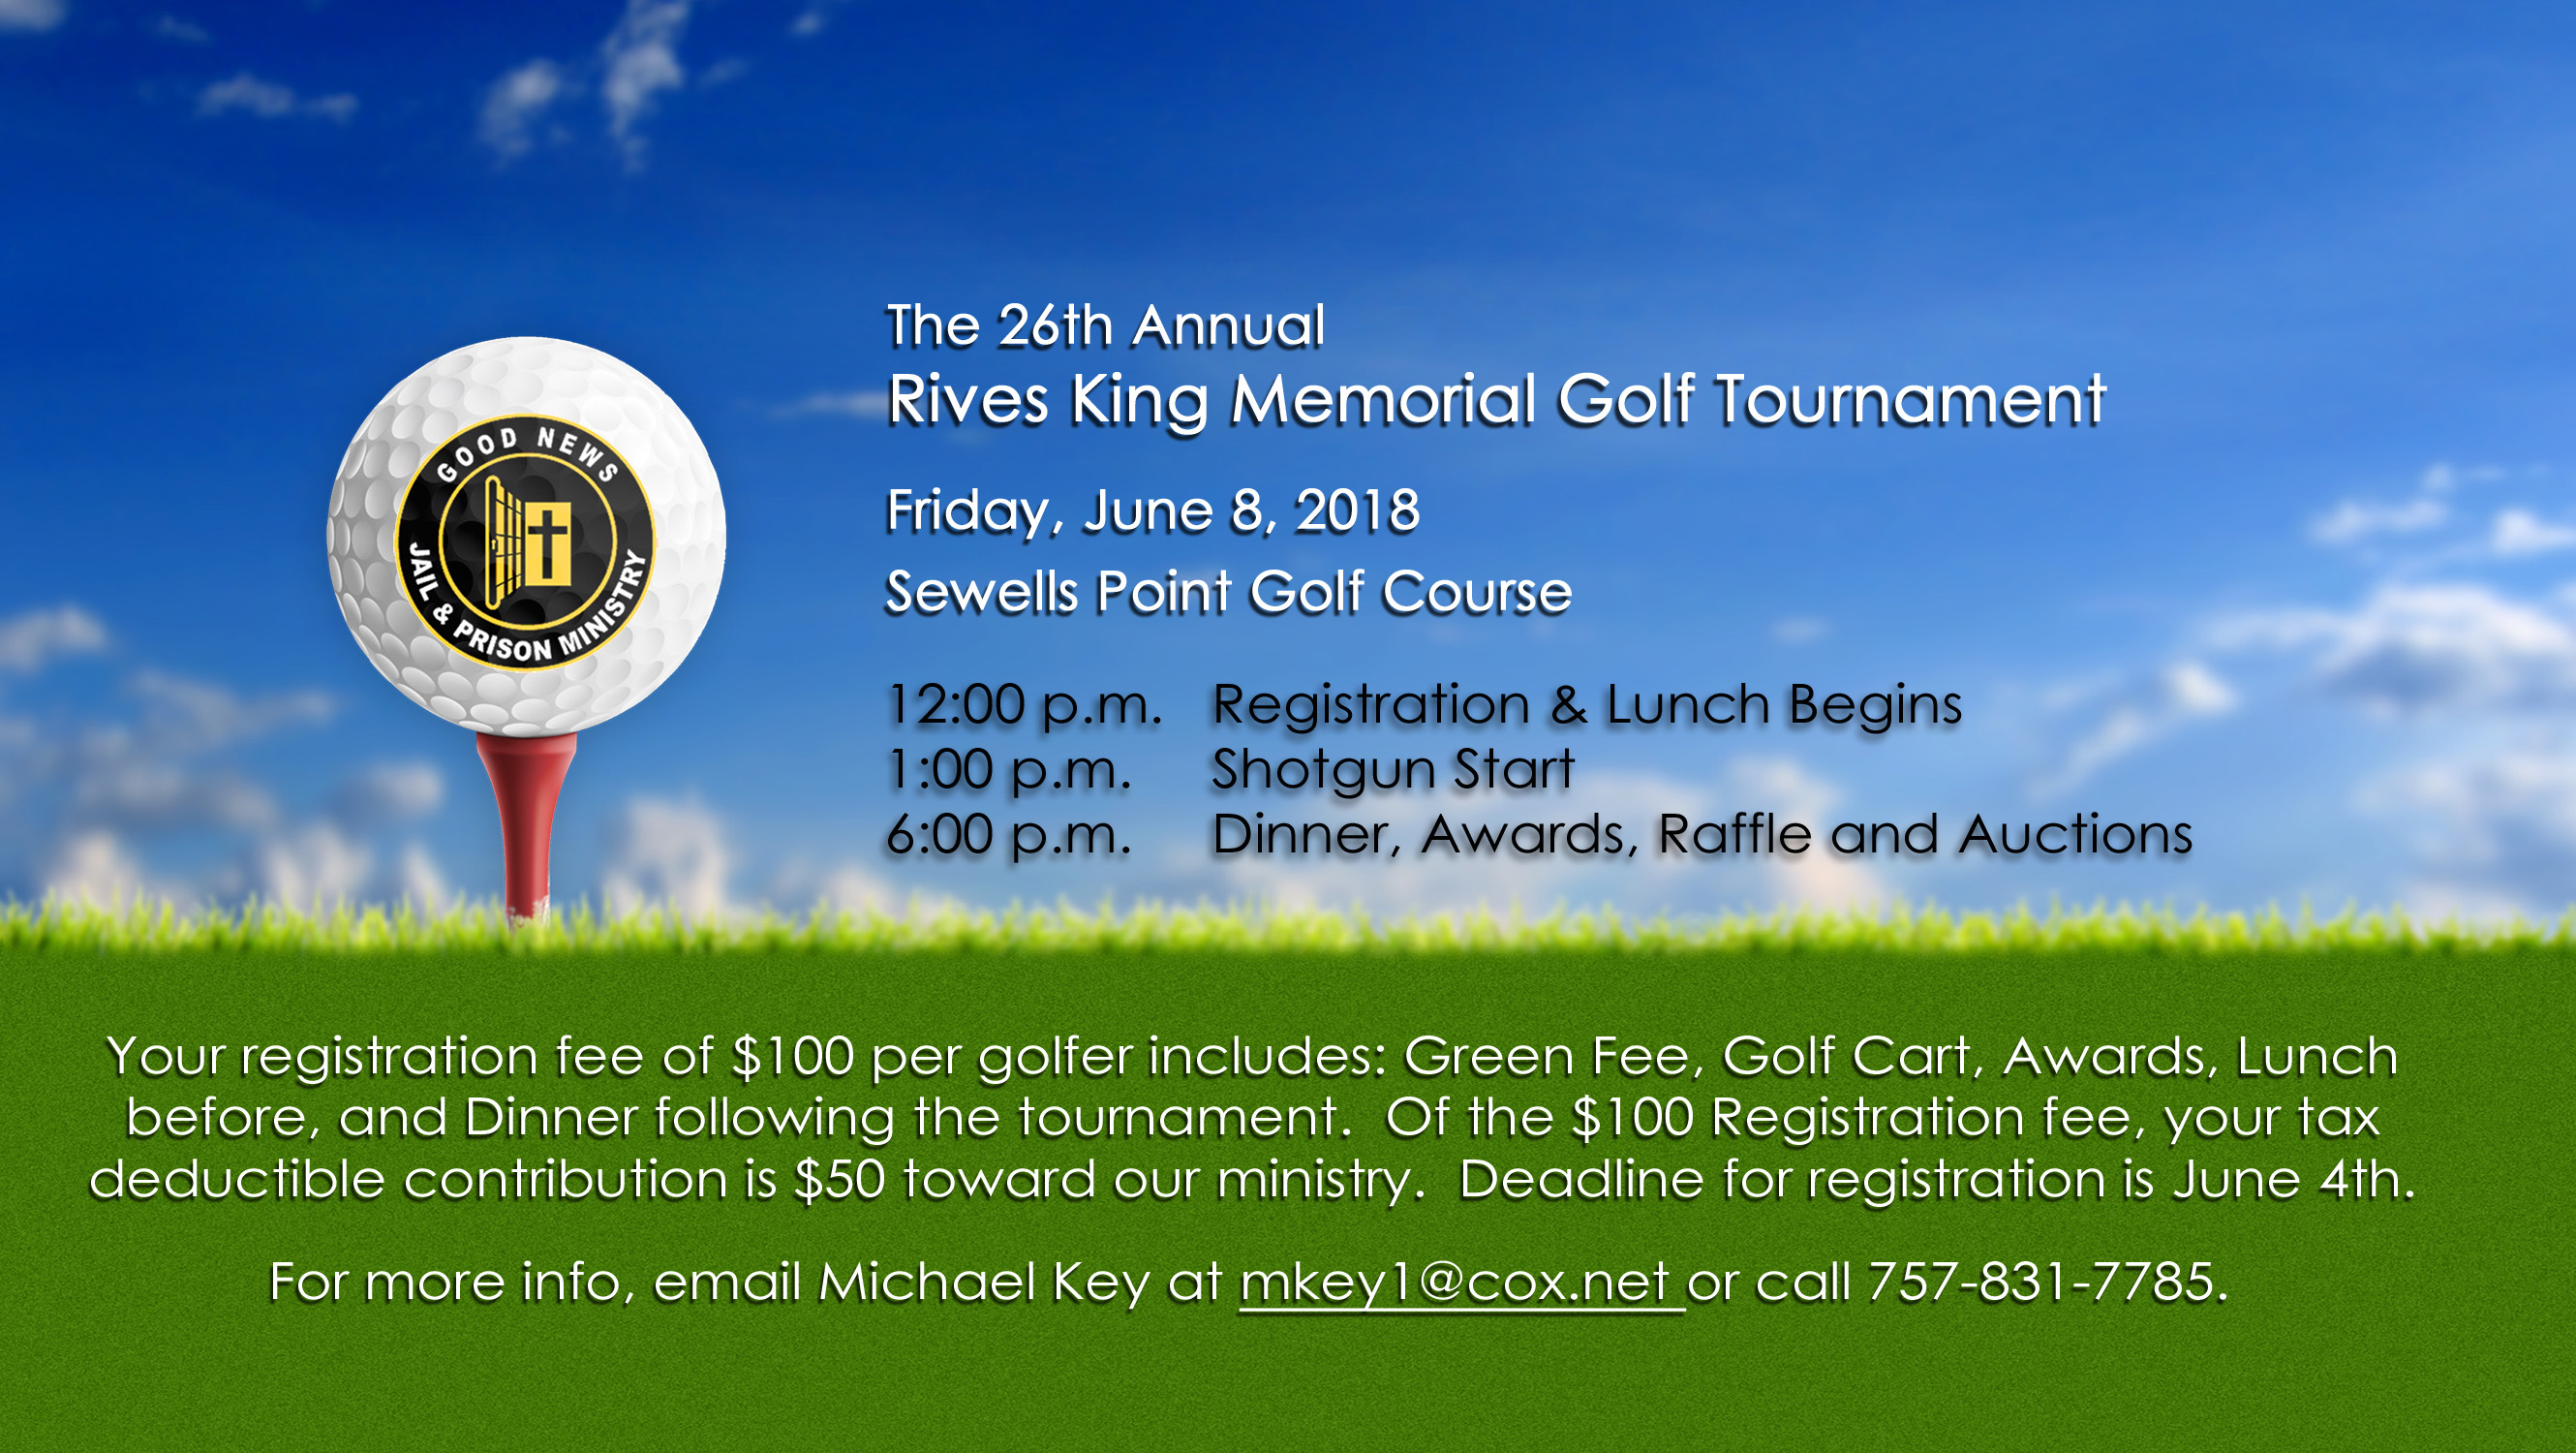 26th Annual Rives King Memoral Golf Tournament